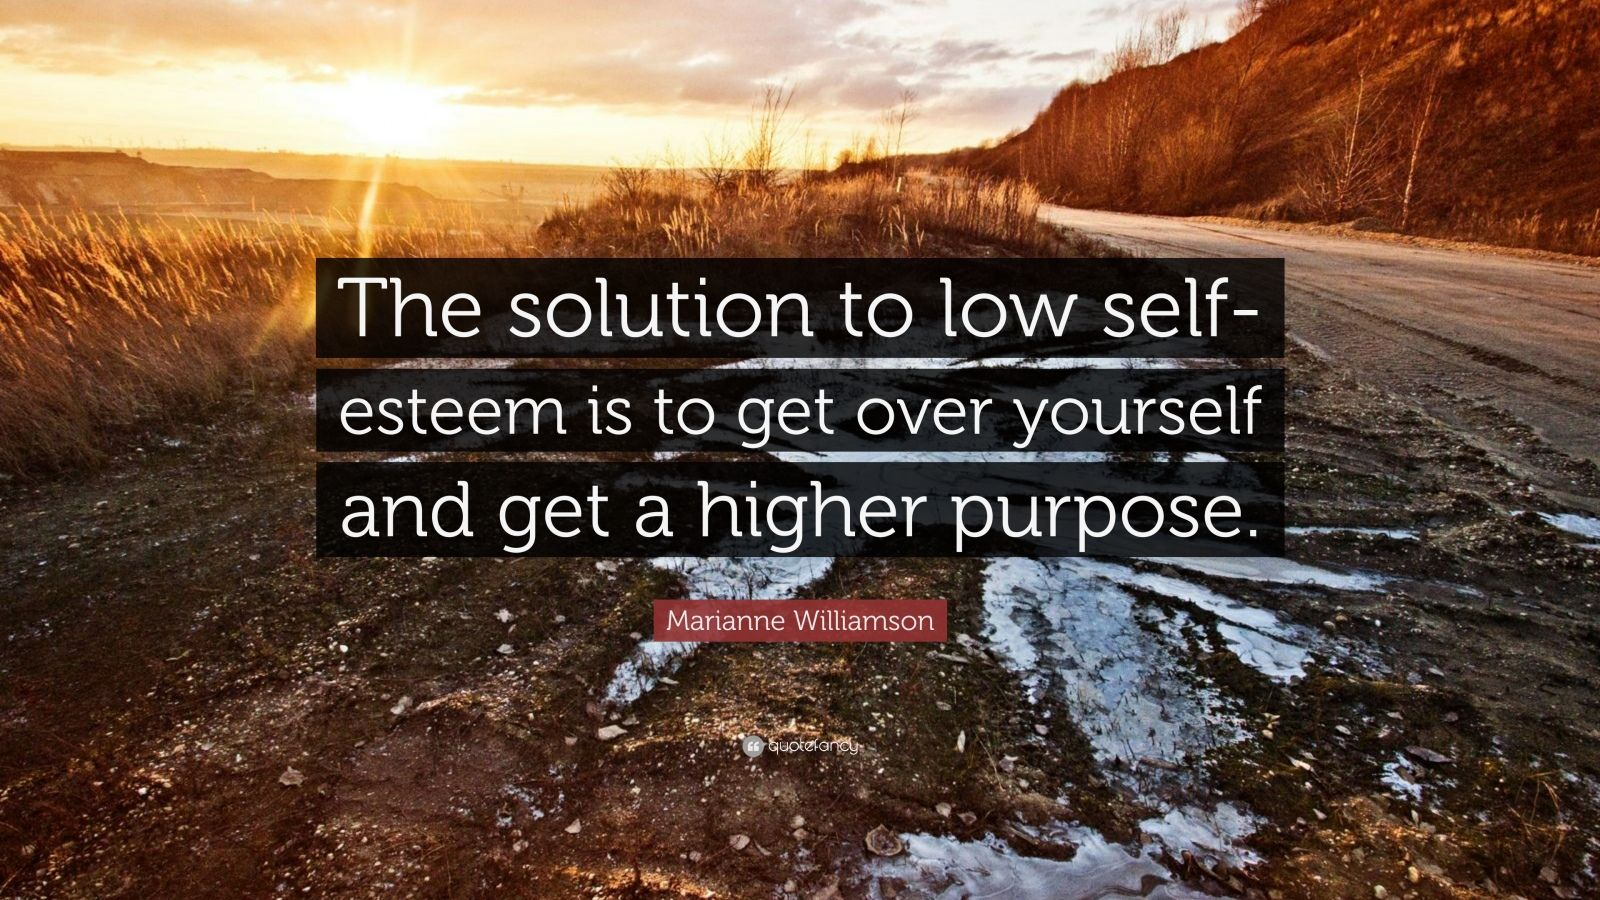 """Marianne Williamson Quote: """"The solution to low self-esteem is to get over yourself and get a higher purpose."""""""